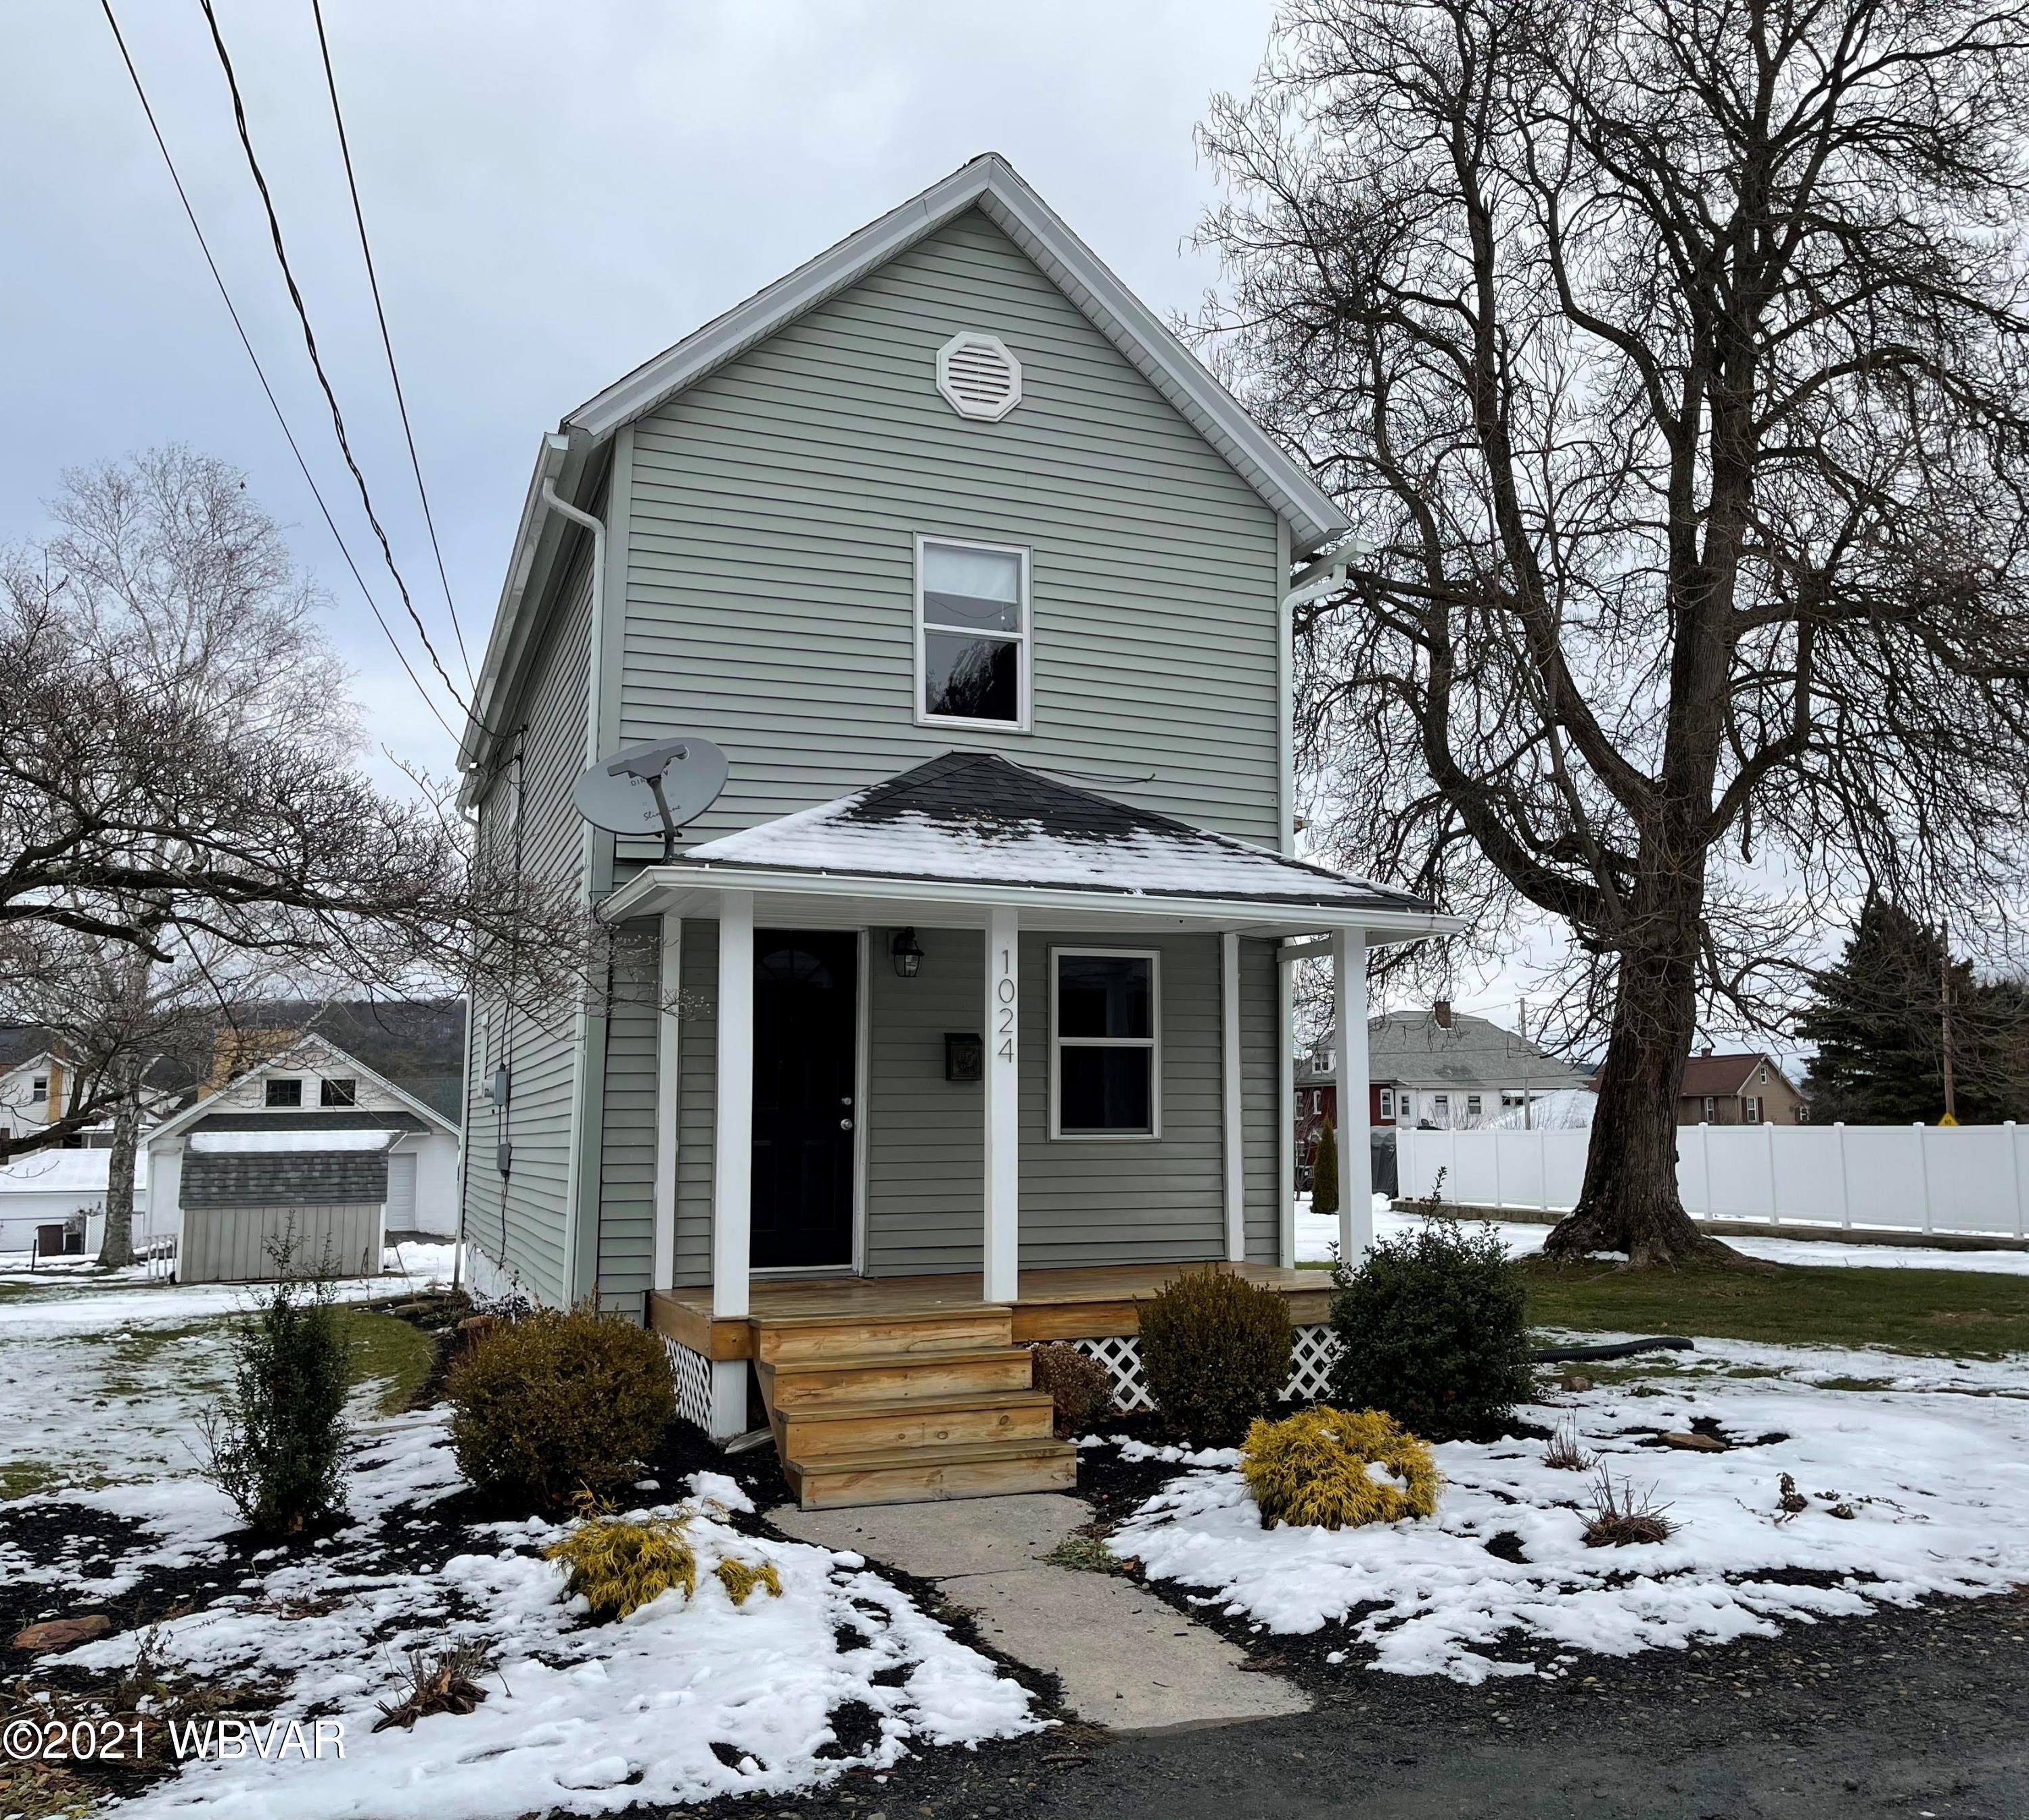 1024 MICHAEL STREET, Jersey Shore, PA 17740, 4 Bedrooms Bedrooms, ,2 BathroomsBathrooms,Residential,For sale,MICHAEL,WB-91721